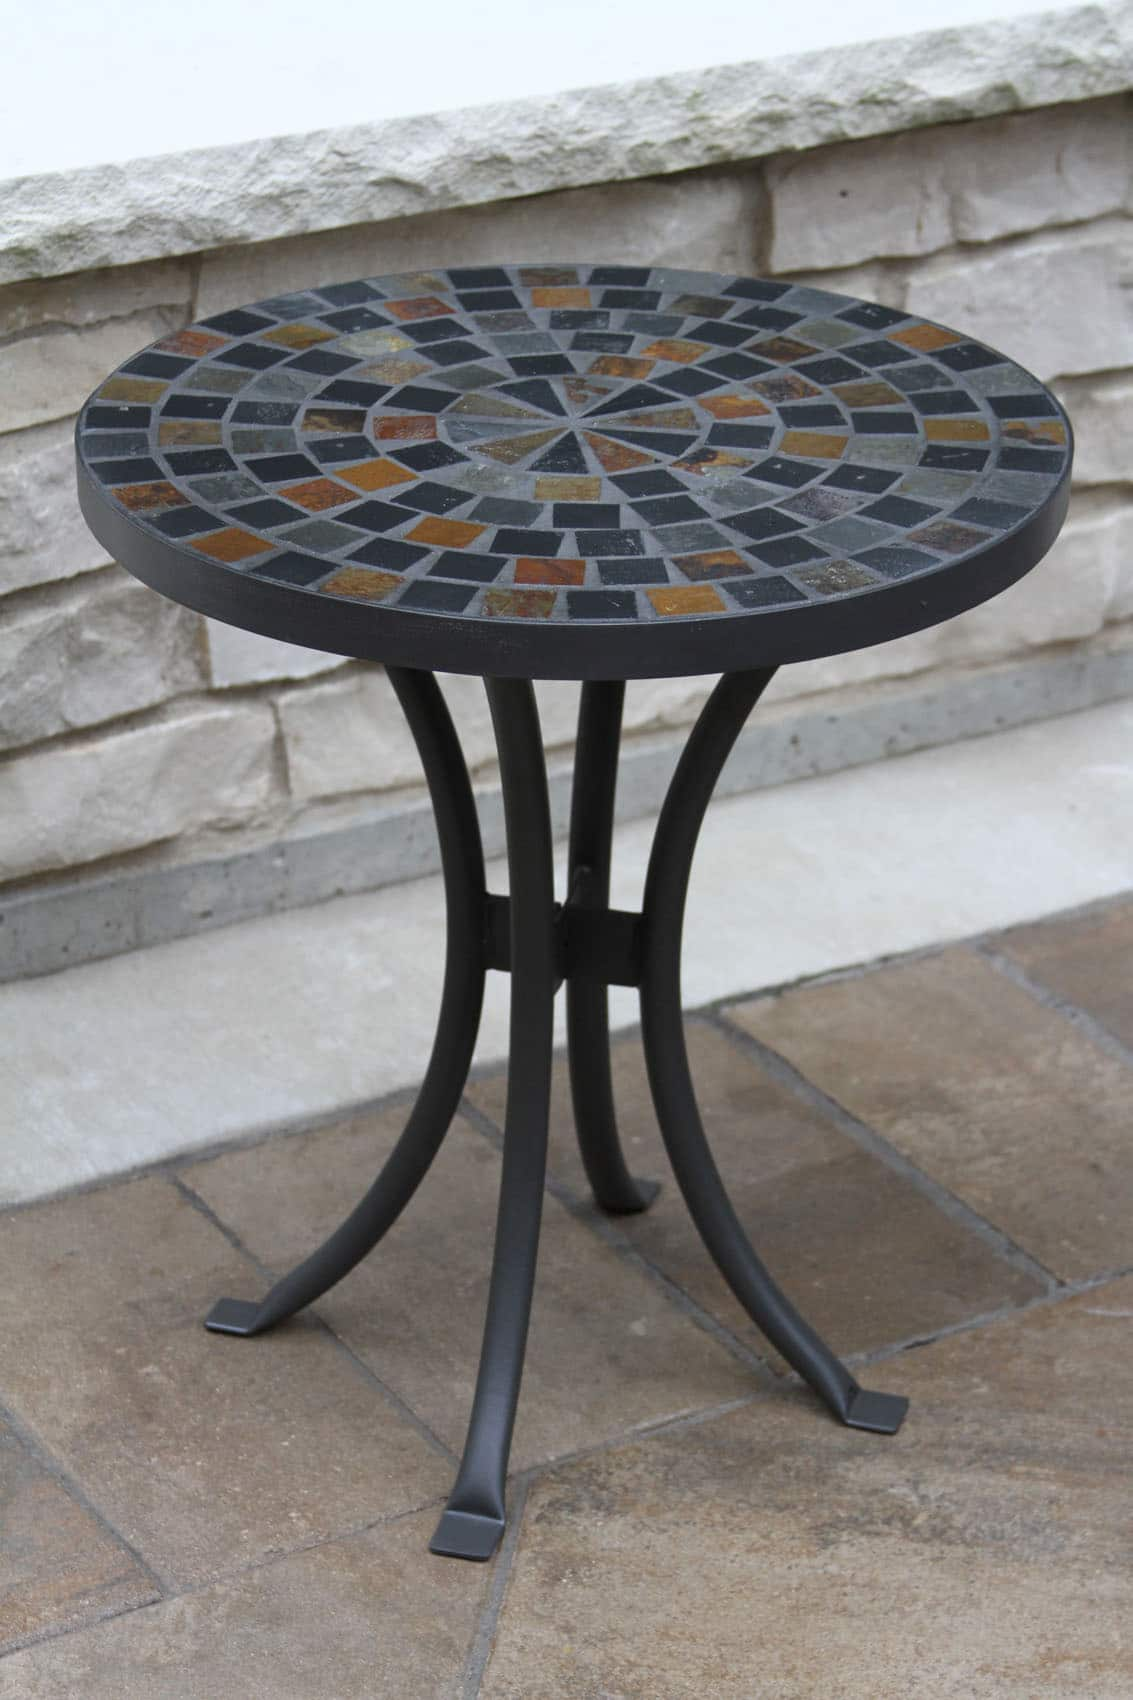 slate mosaic accent table for decks patios and gardens cobble stone outdoor vintage white end footstool coffee pottery barn marble nesting dining chairs black linens pier one wall